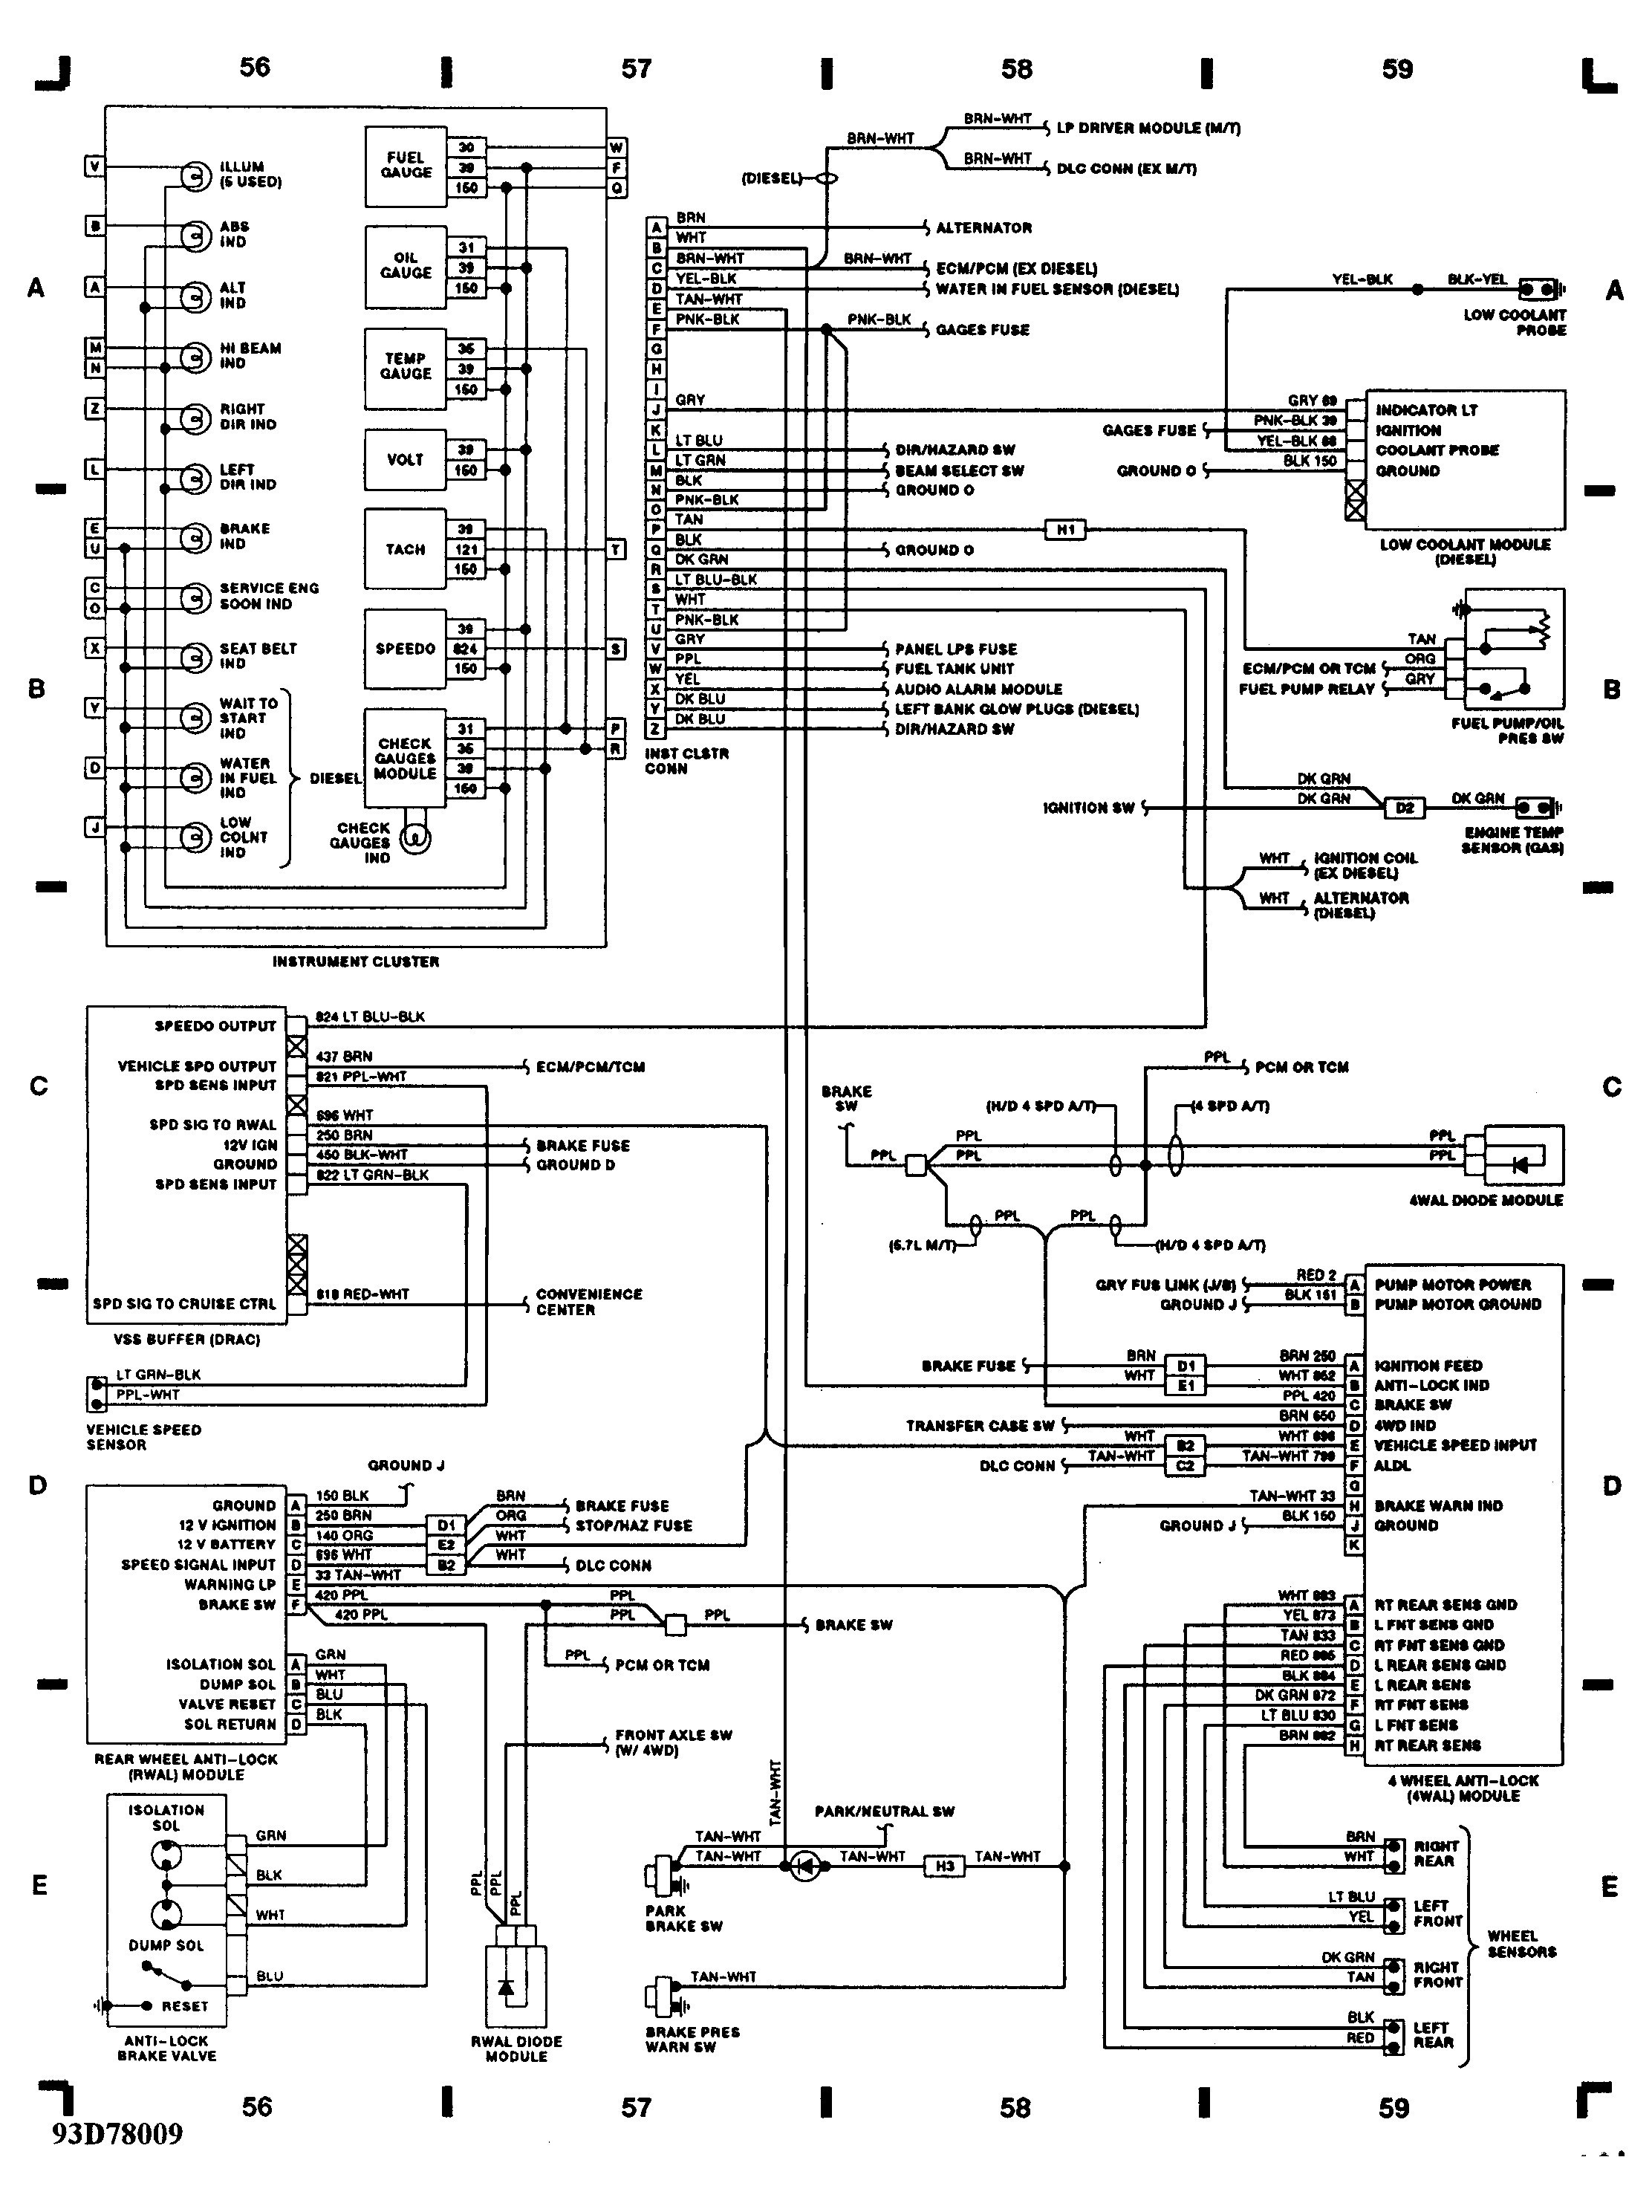 2000 Mustang Wiring Diagram 3 8 Residential Electrical Symbols 1969 Pdf 2002 Engine U2022 Rh Msblog Co Ford